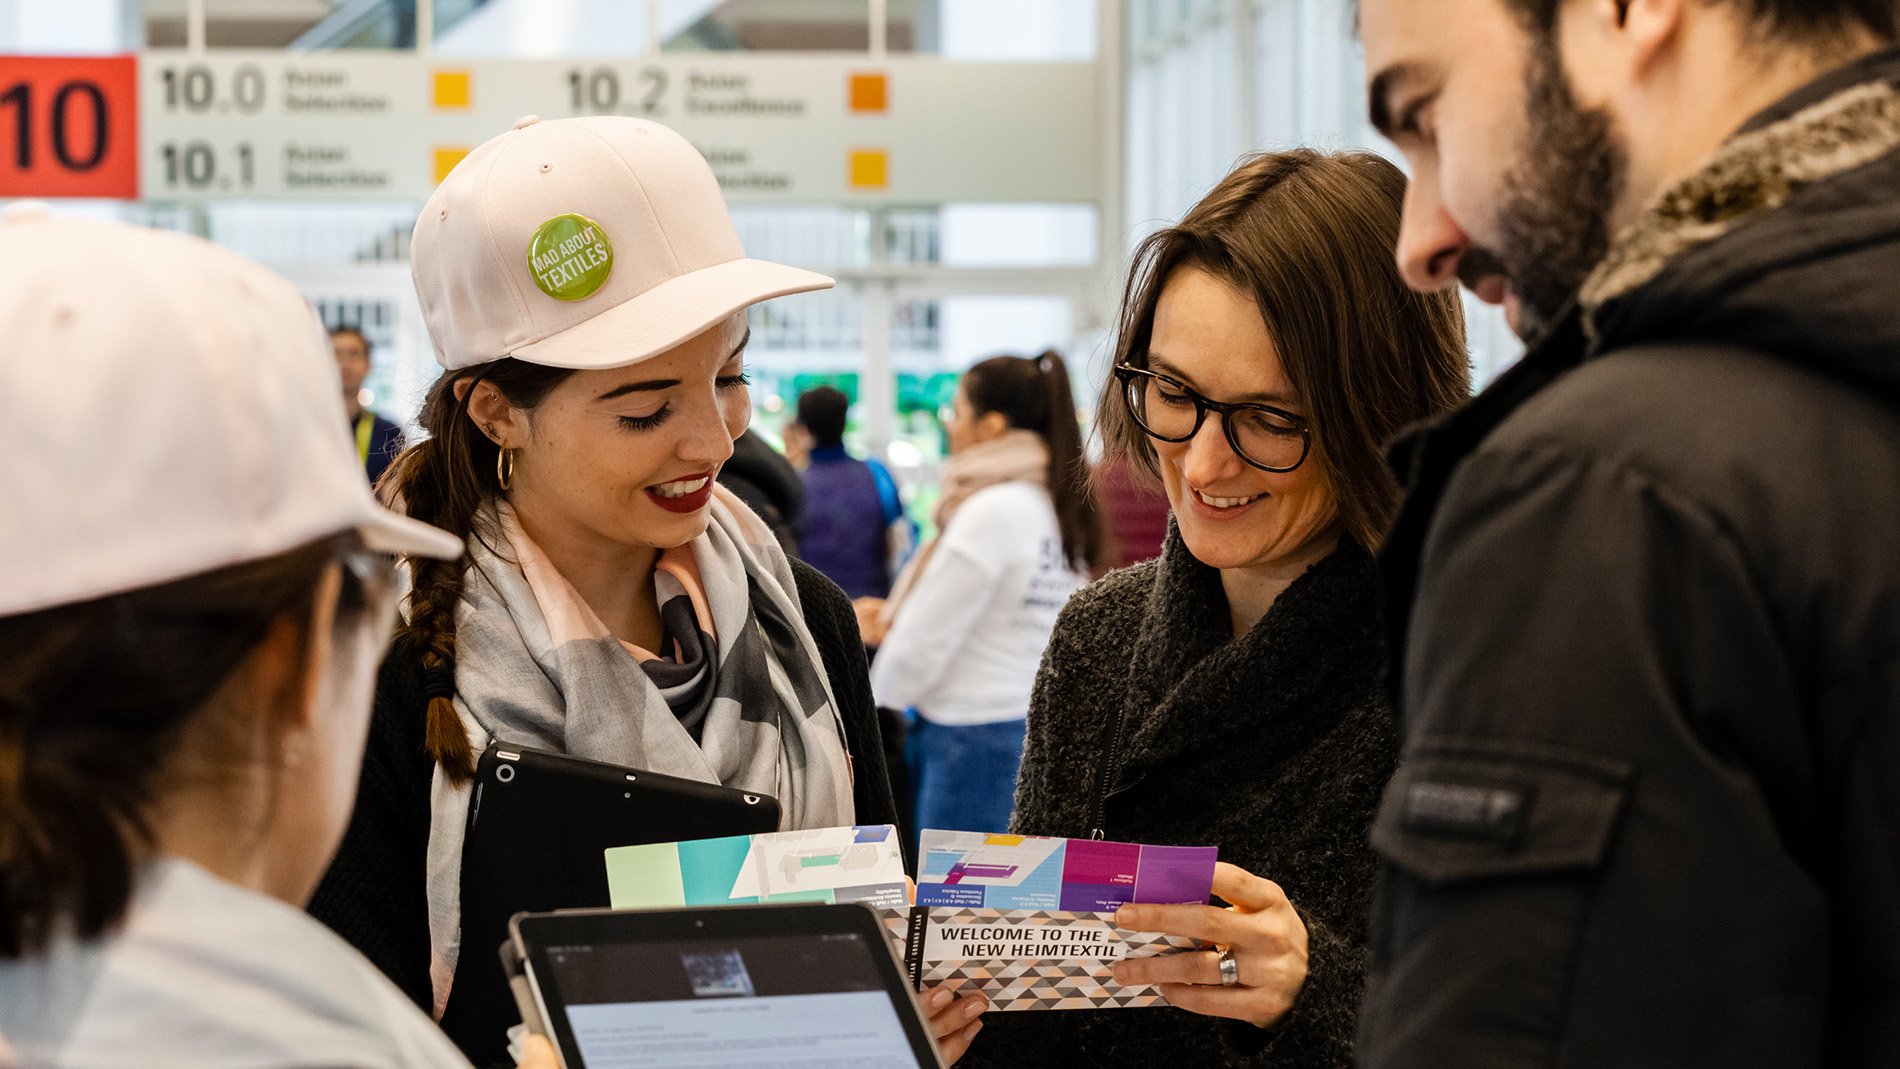 Promotion: Hostess distributes flyers at Messe Frankfurt